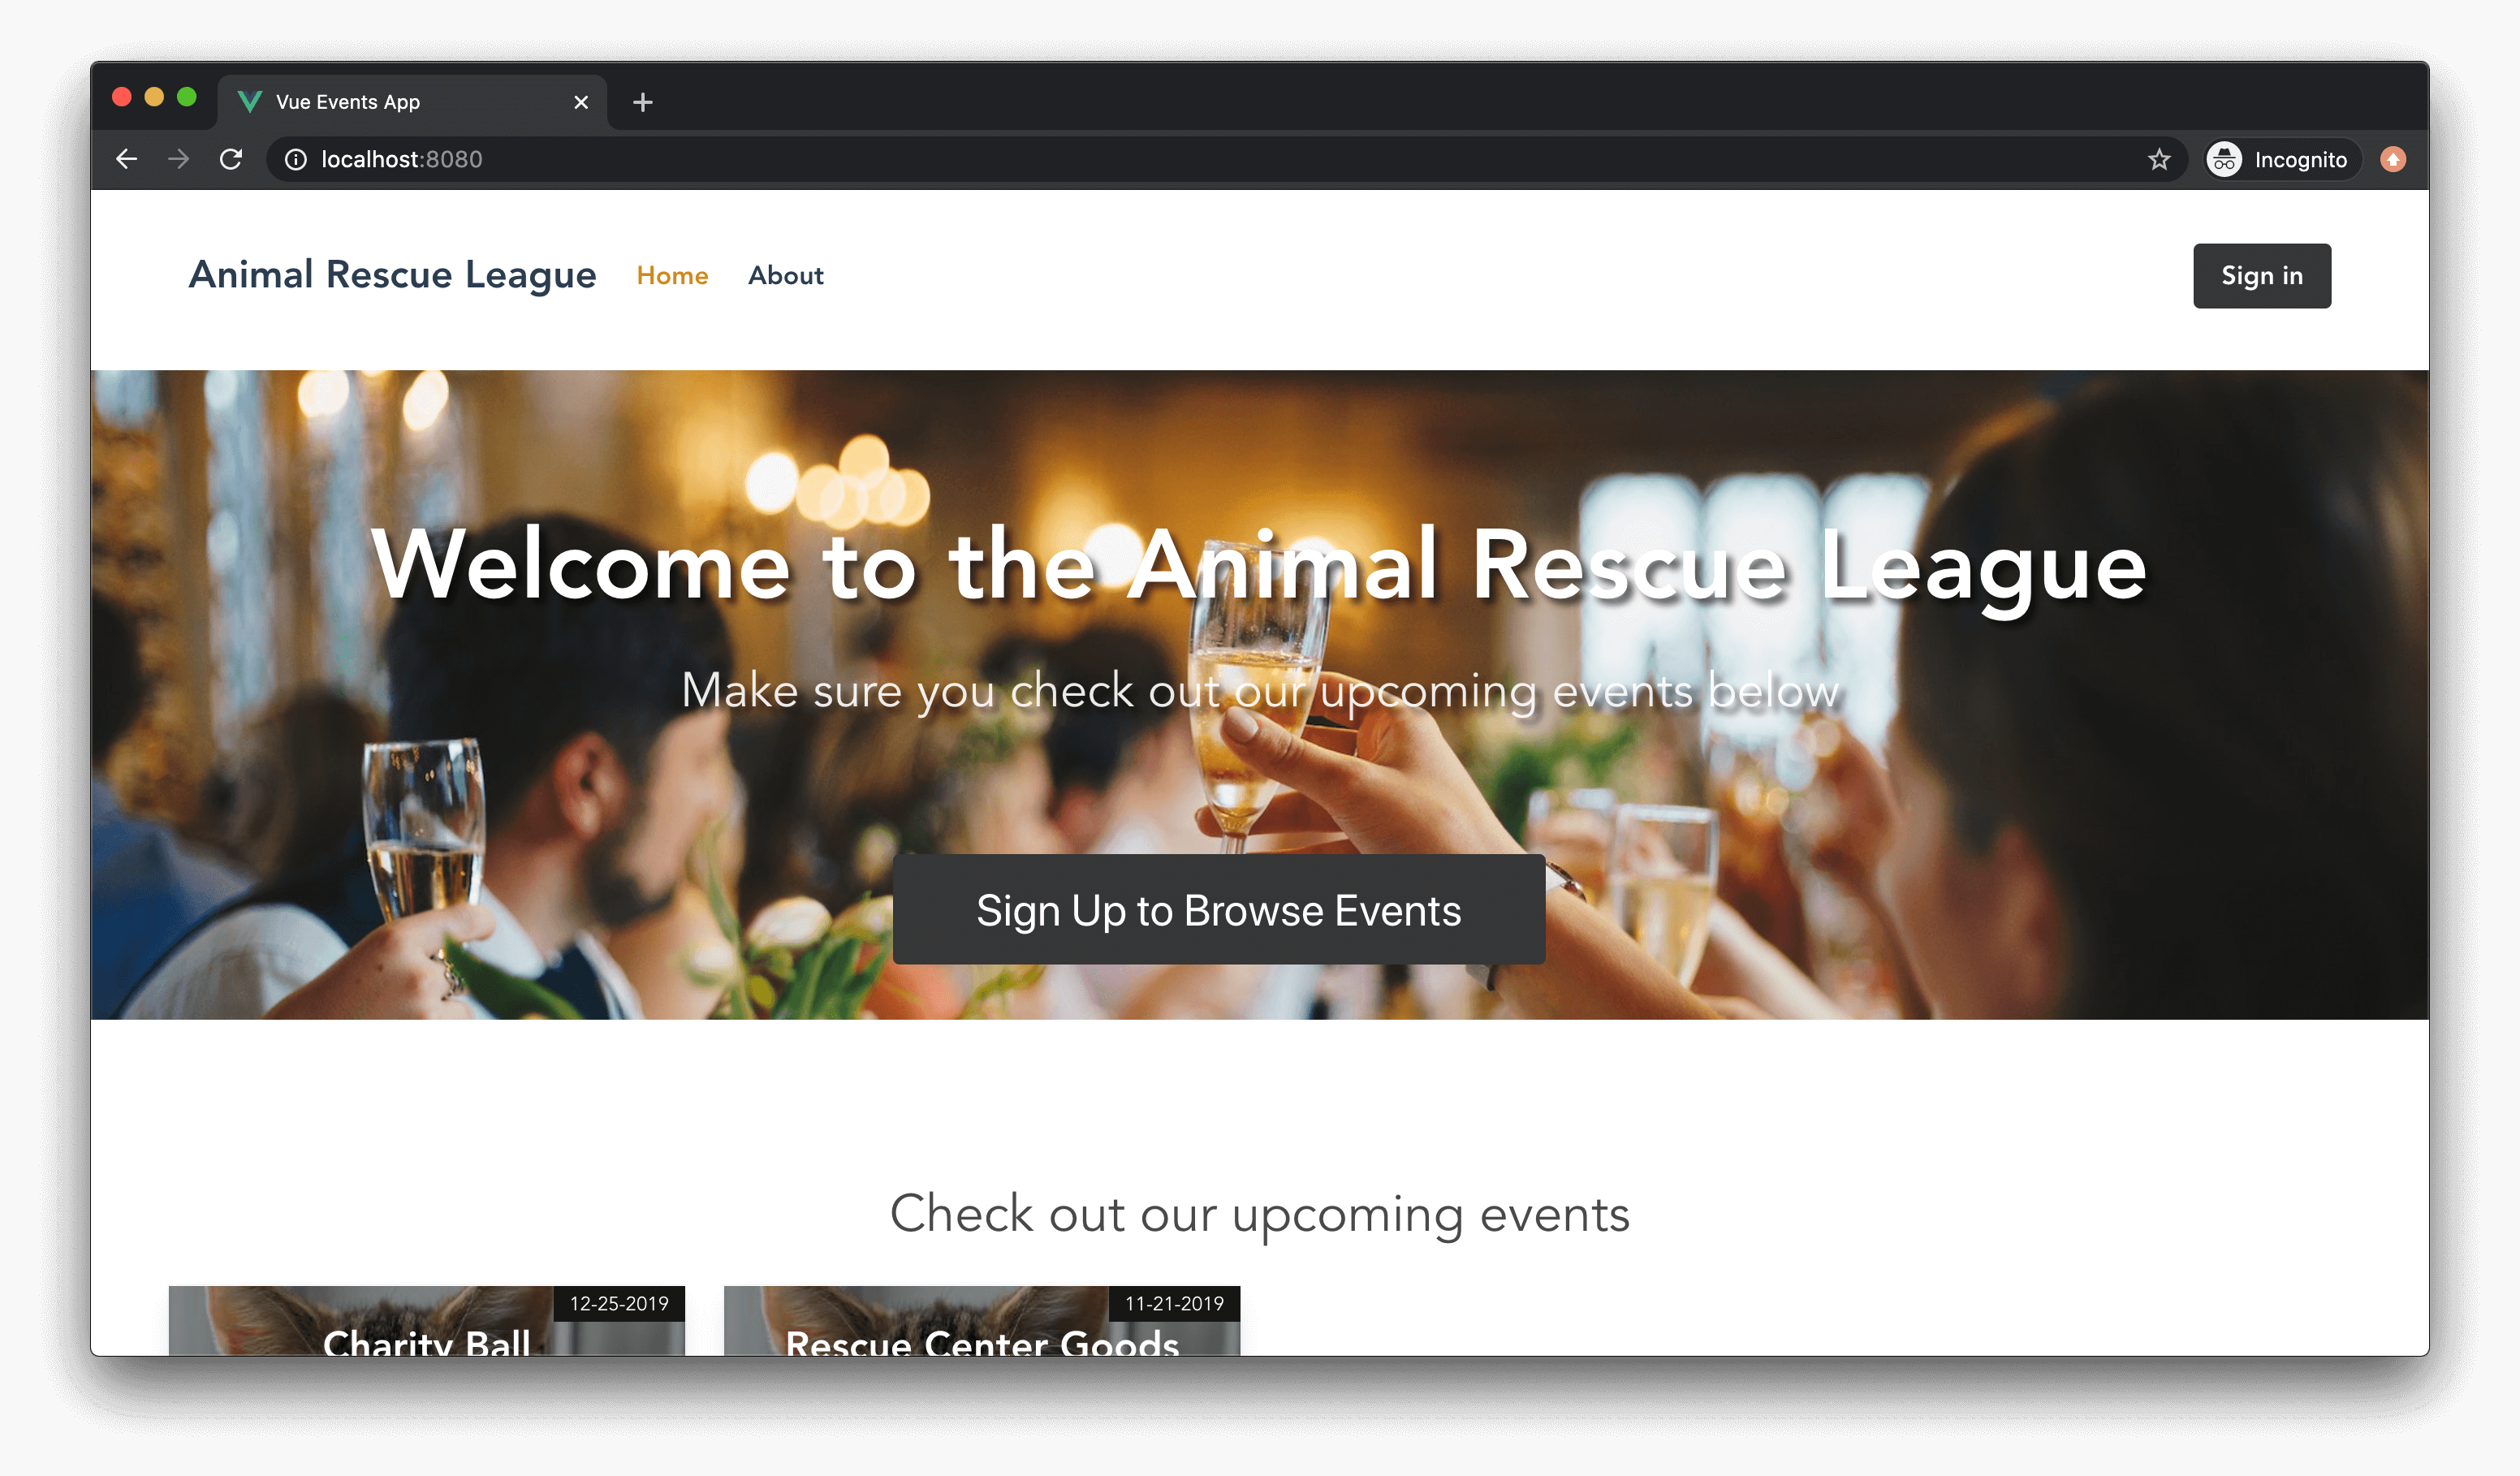 Initial view of the Vue app home page